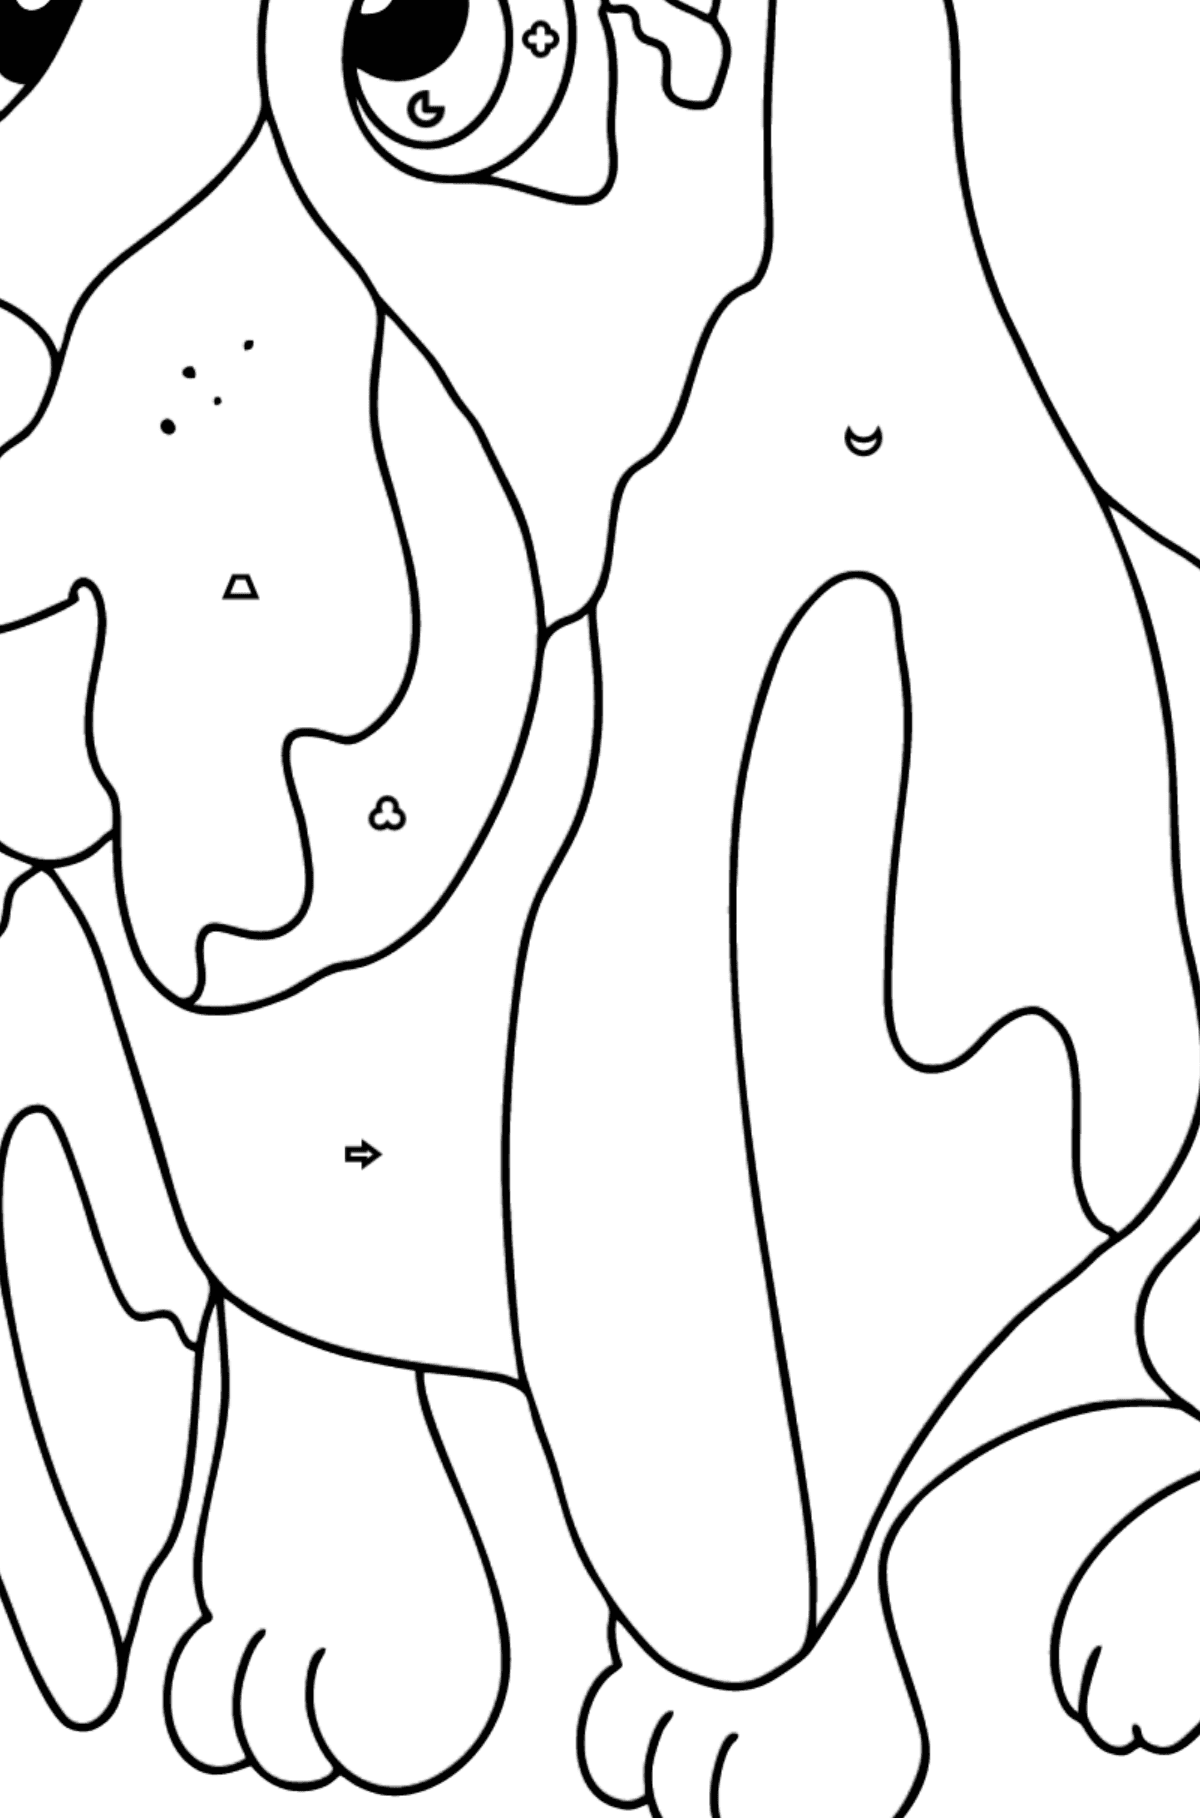 Coloring Page - A Dog is Sitting near a Bone - Coloring by Geometric Shapes for Kids